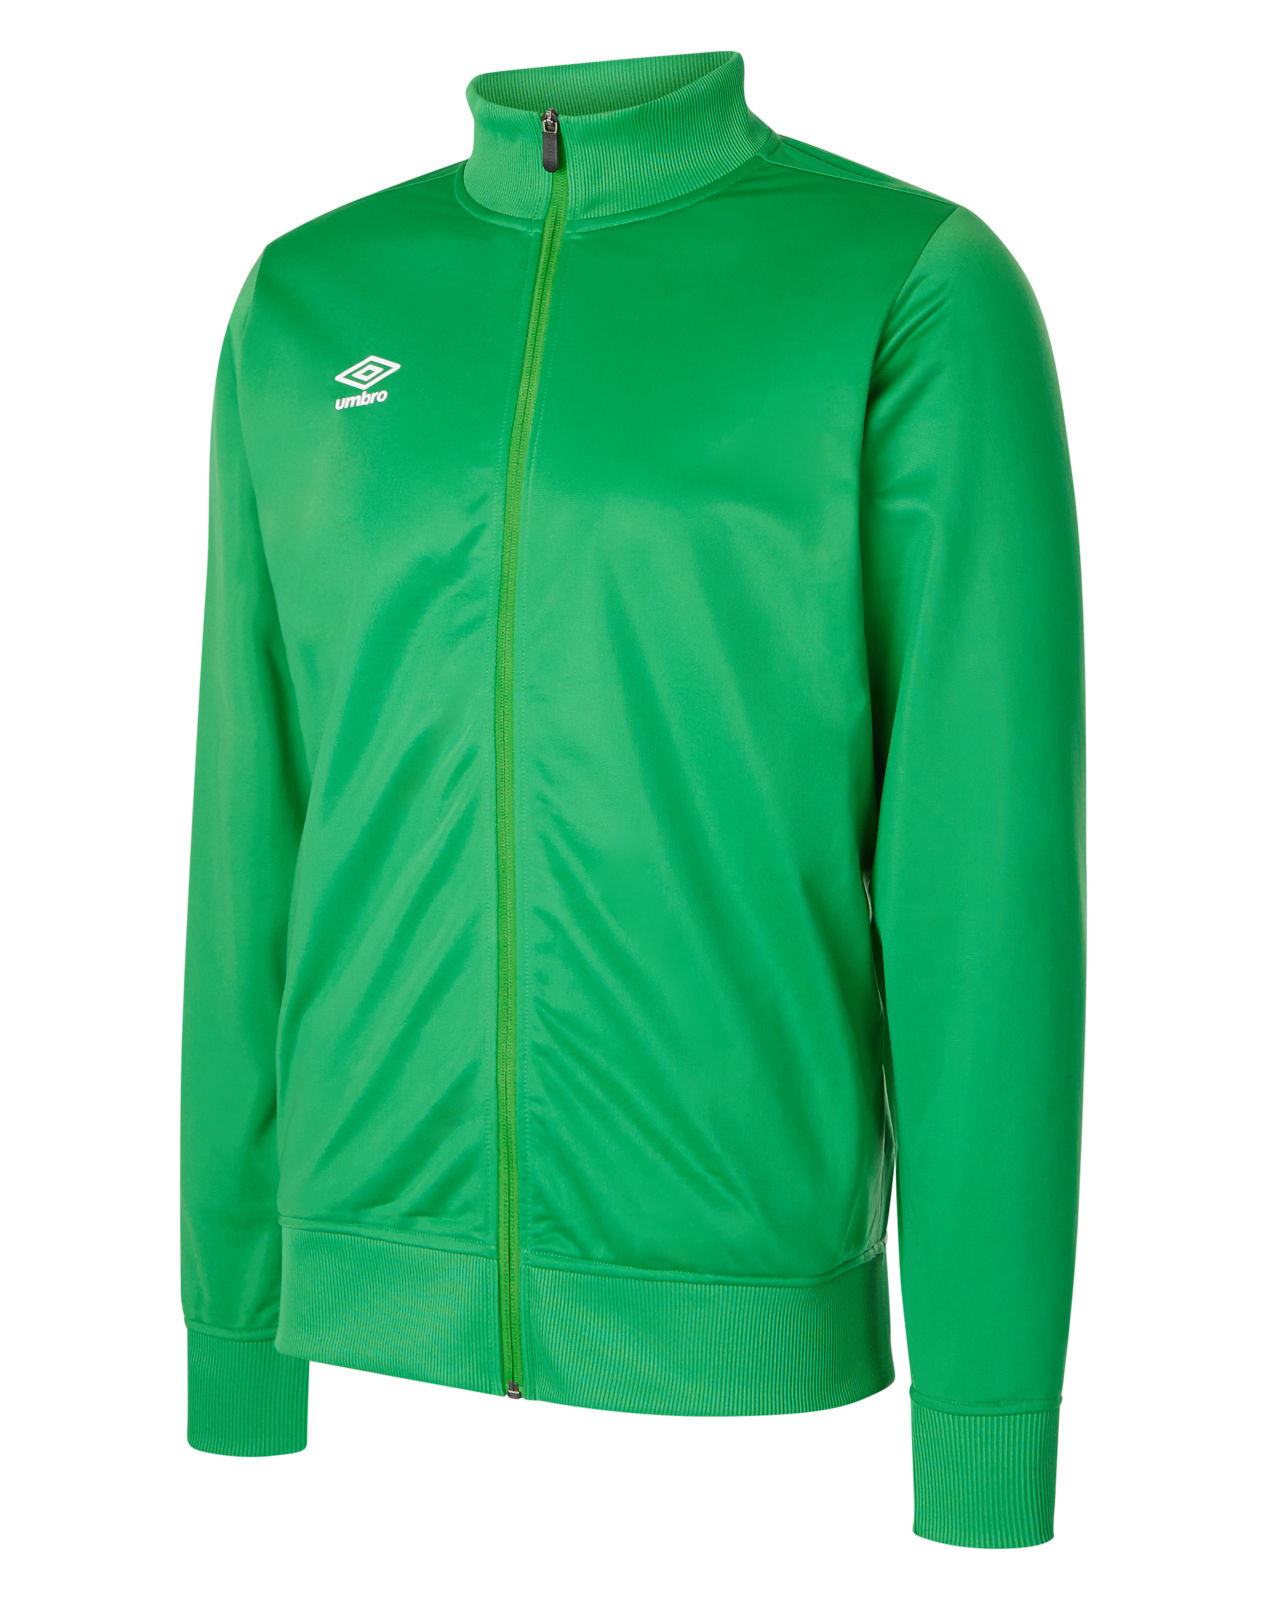 TW Emerald Umbro Club Essential Poly Jacket with full zip and white Umbro logo on the right chest